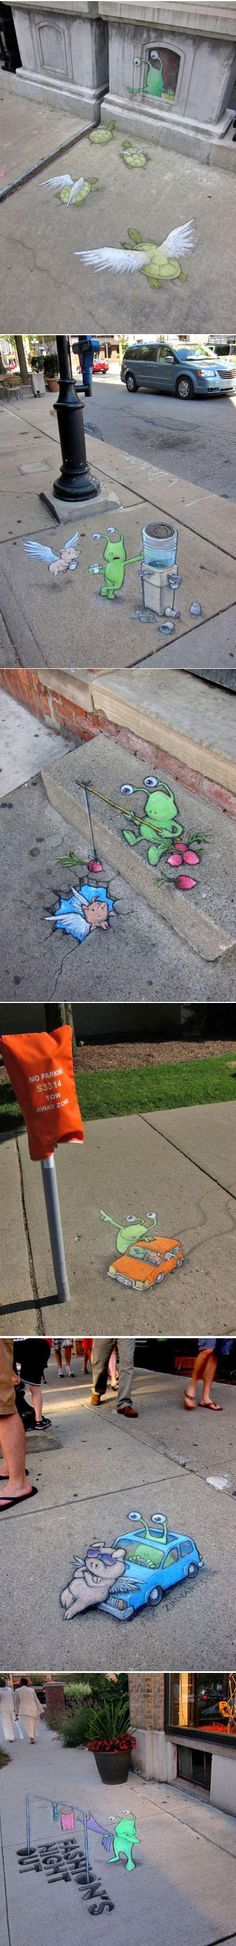 Sluggo Chalk Street Art by David Zinn